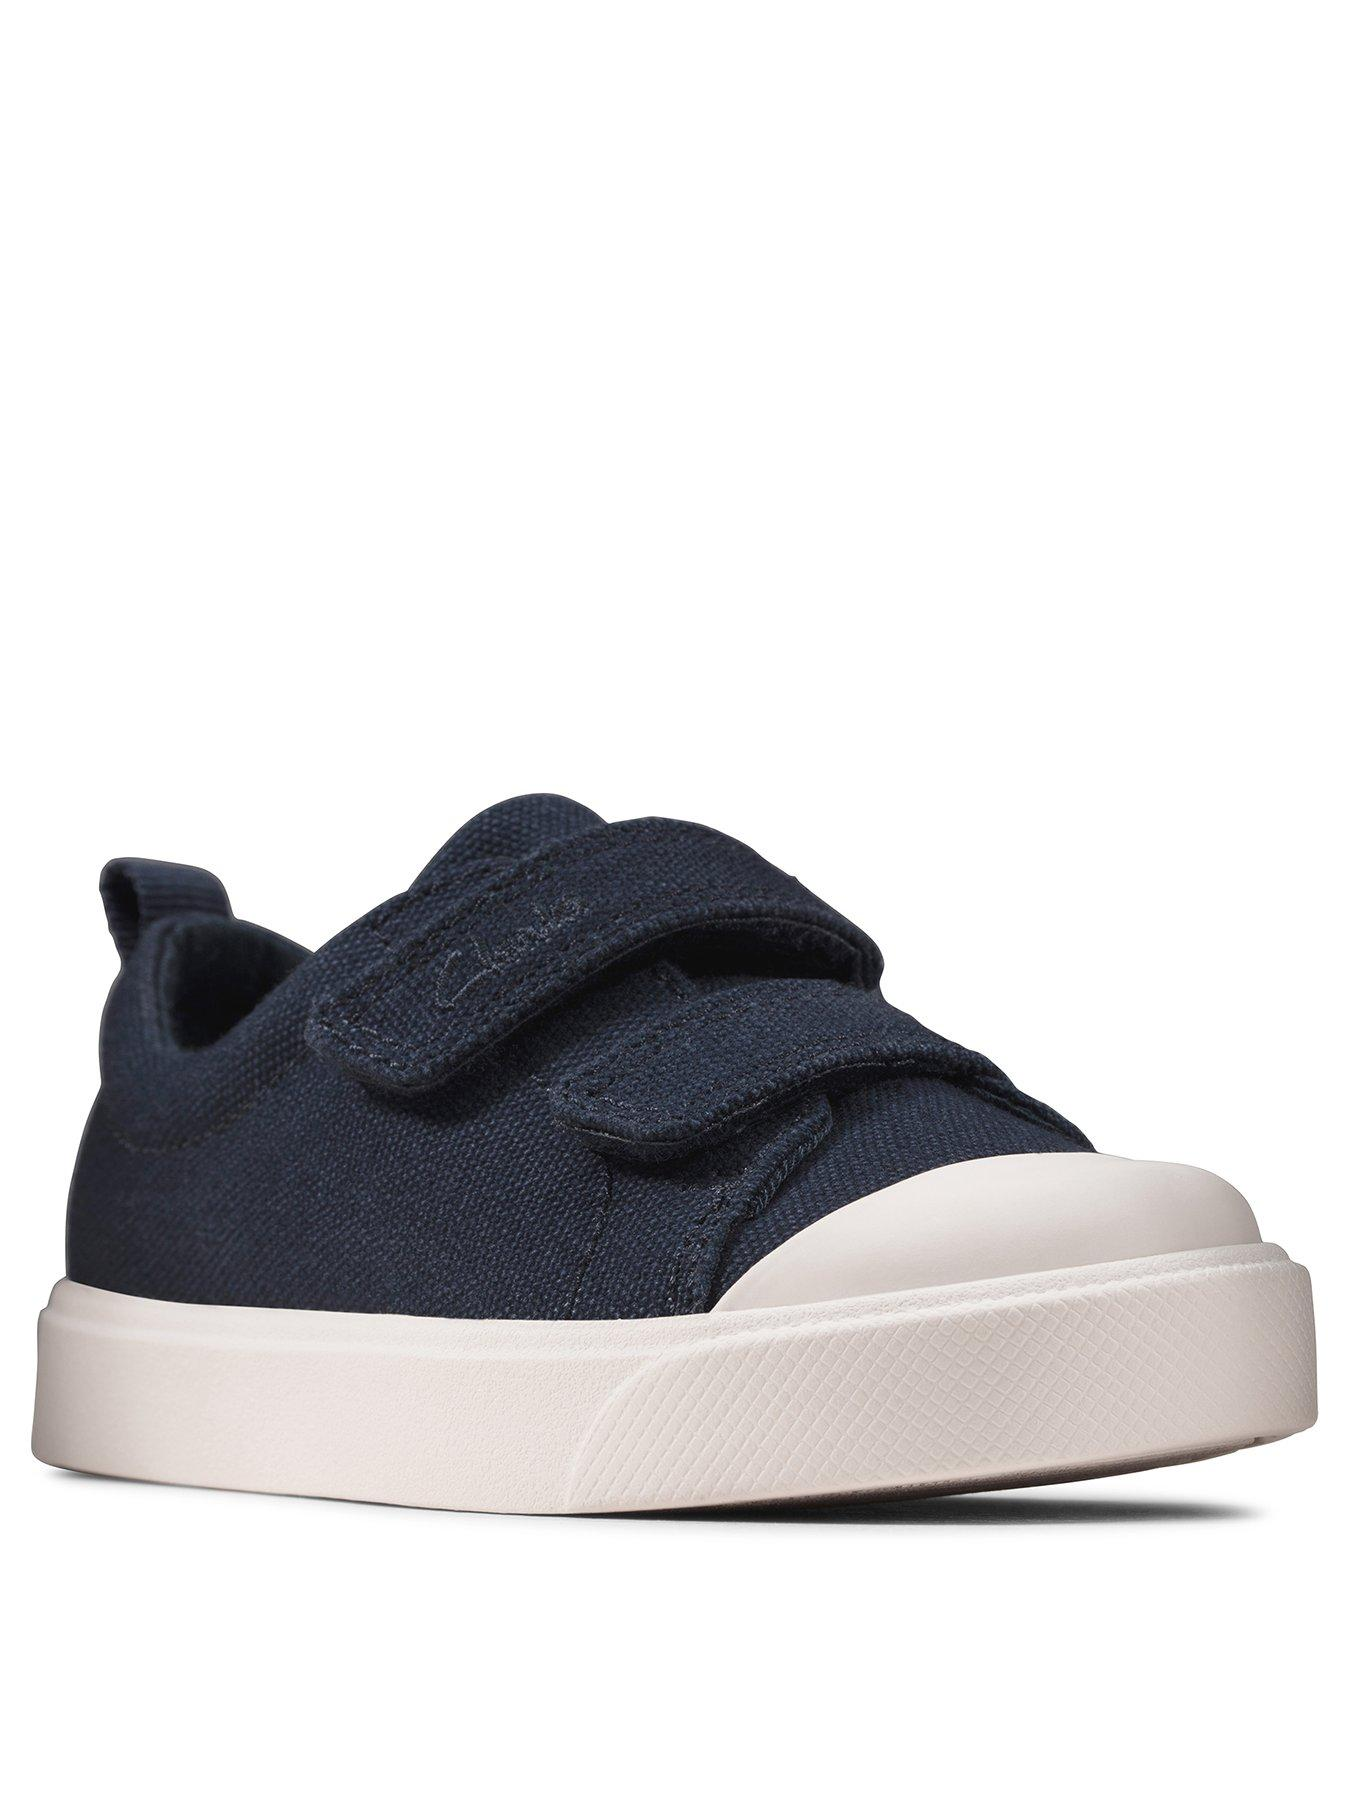 GIRLS BOYS CLARKS CITY GEO T TODDLER HOOK /& LOOP SUMMER CANVAS SHOES TRAINERS